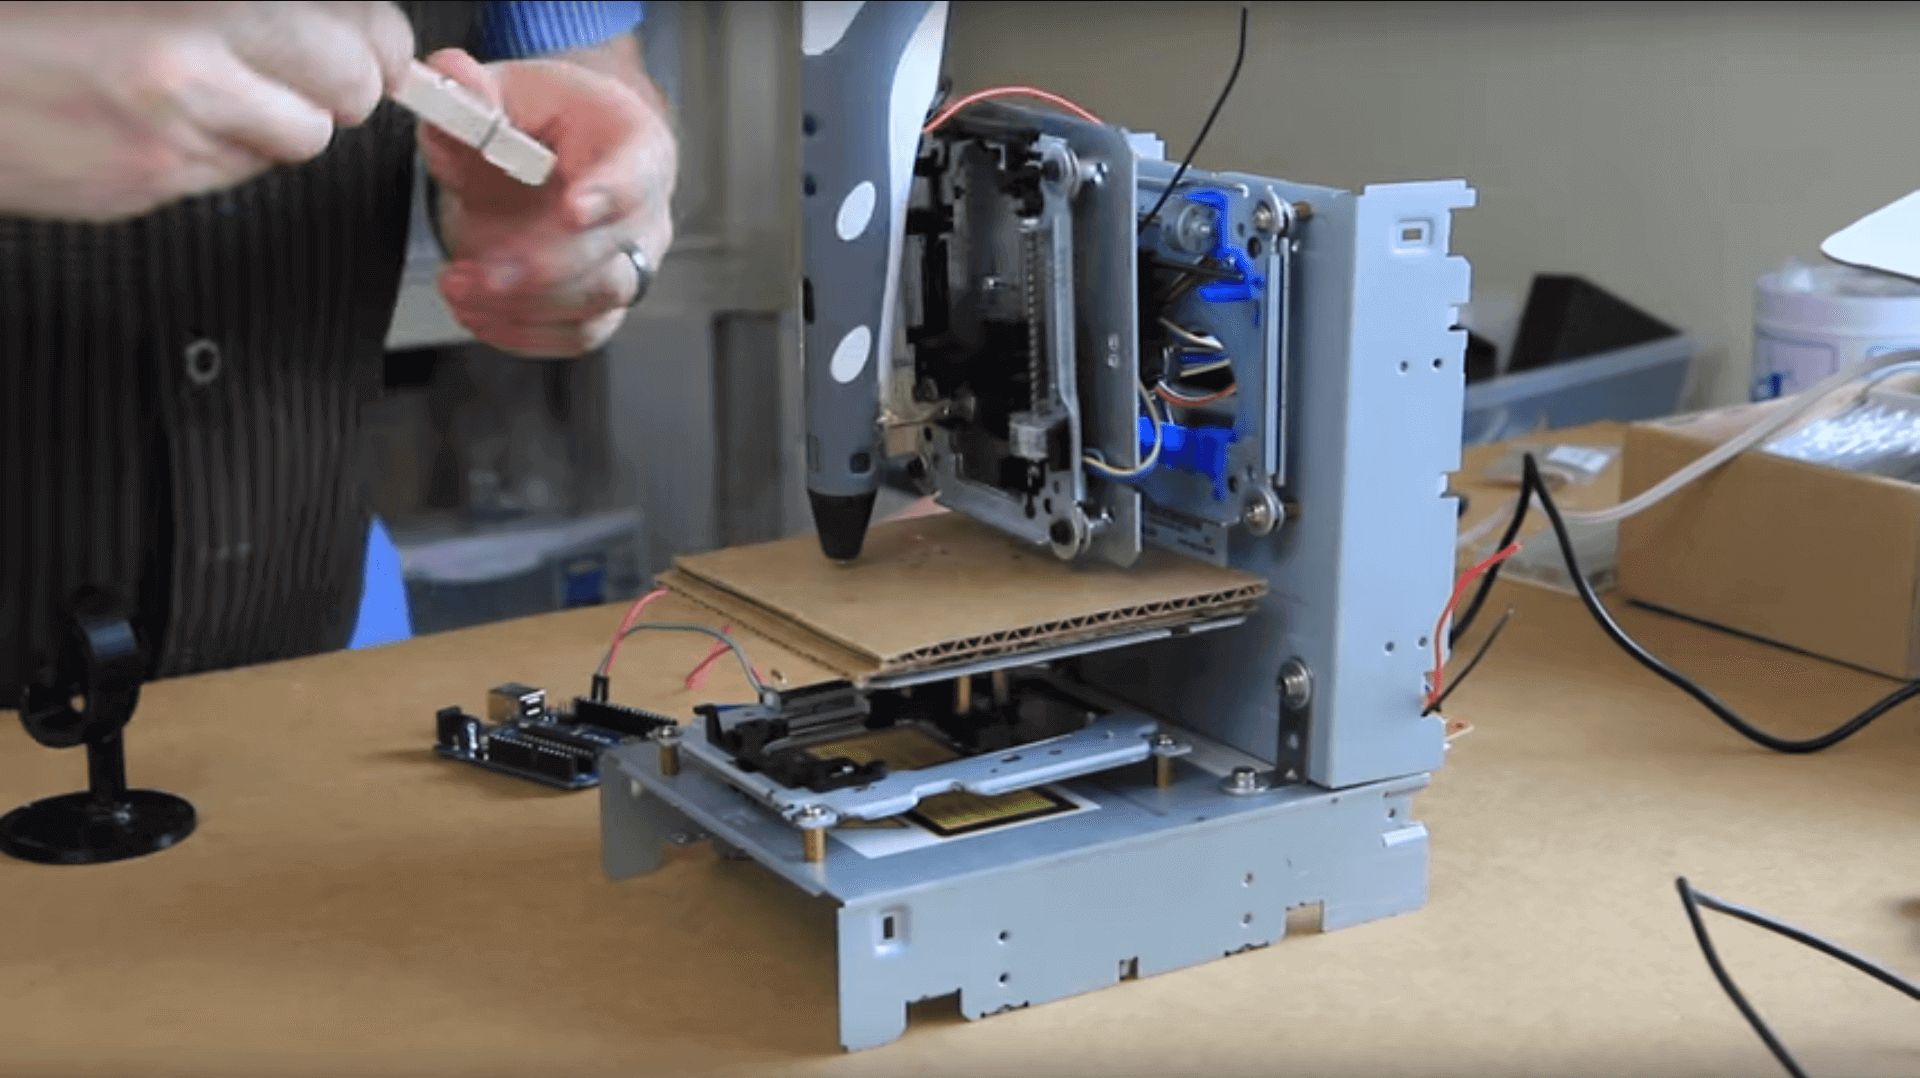 Build A Super Cheap Diy 3d Printer From Old Cd Rom Drives